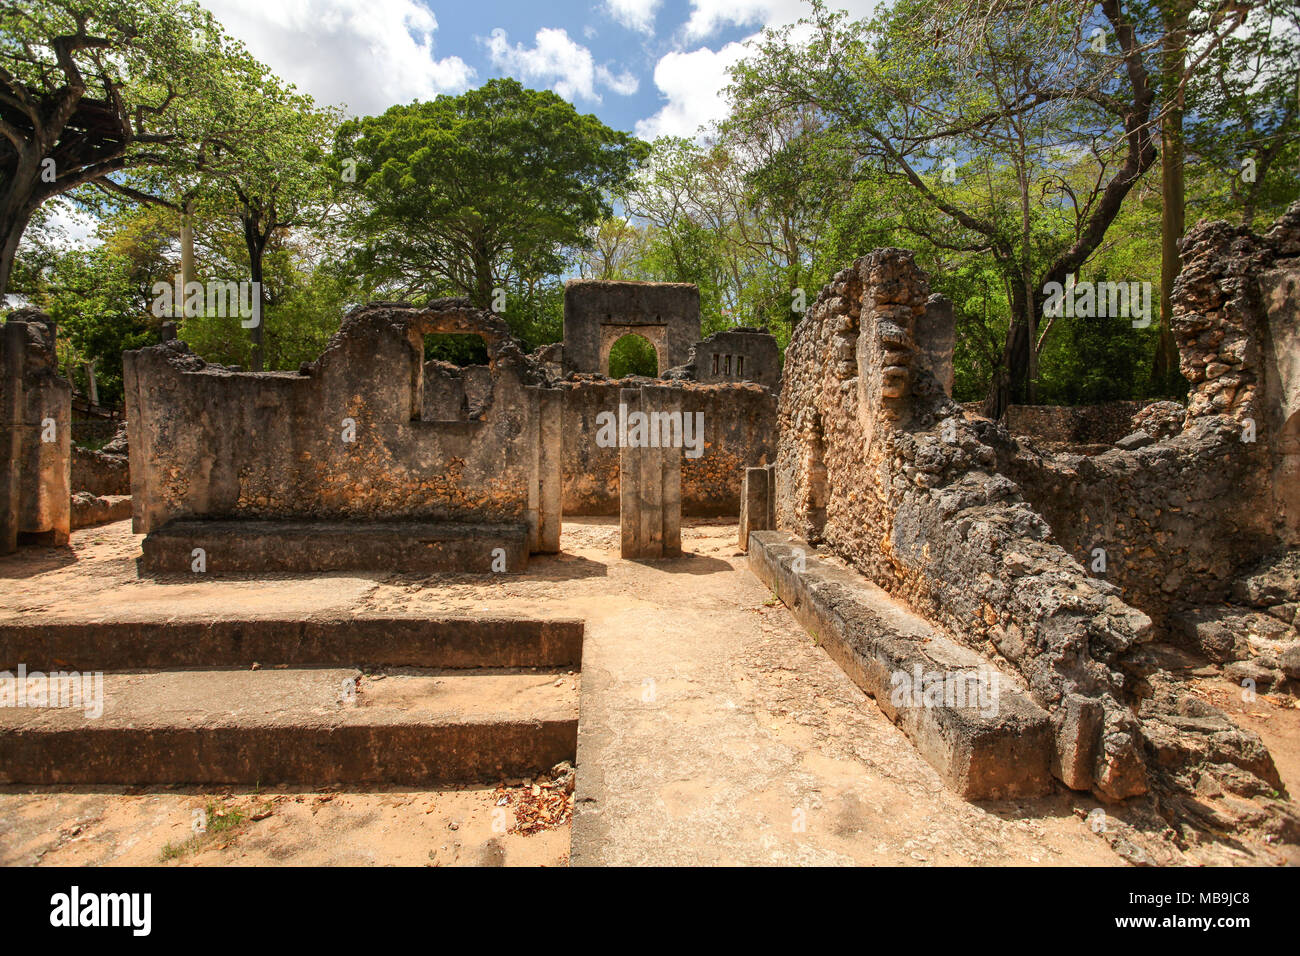 Remains of ancient african city Gede (Gedi) in Watamu, Kenya with trees and sky in background. - Stock Image